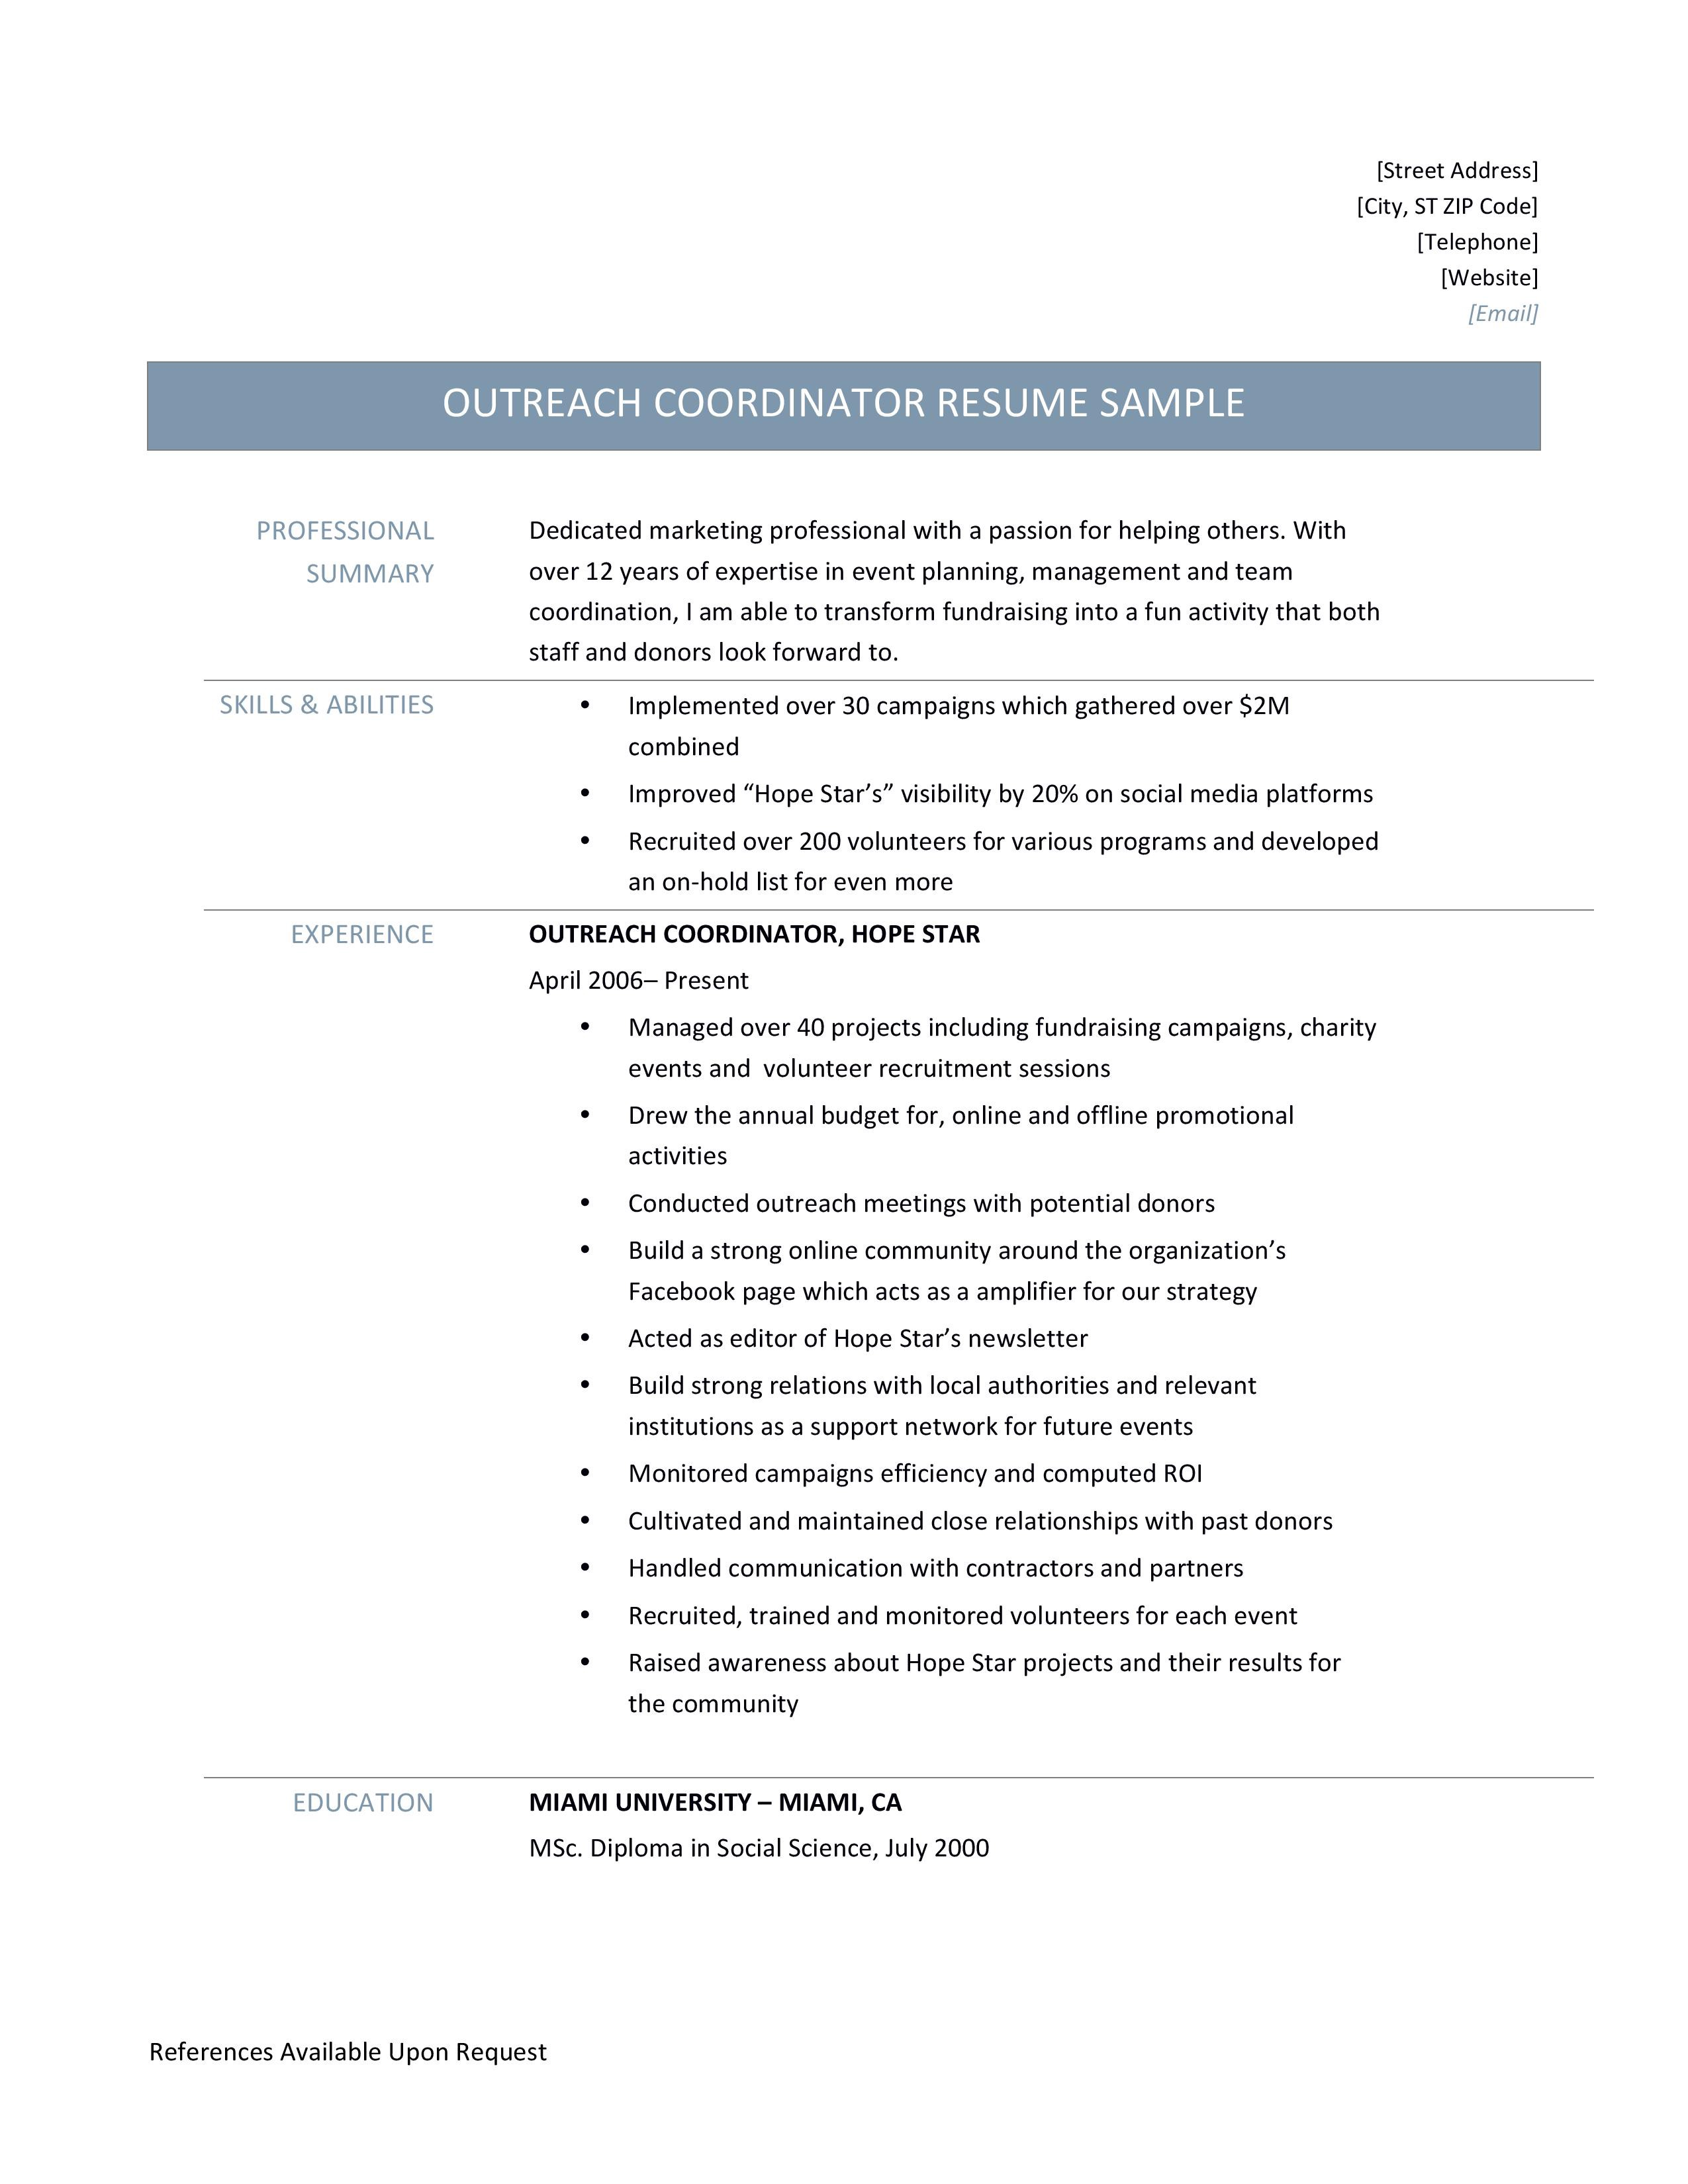 Outreach Coordinator Resume Samples Tips And Template By Online